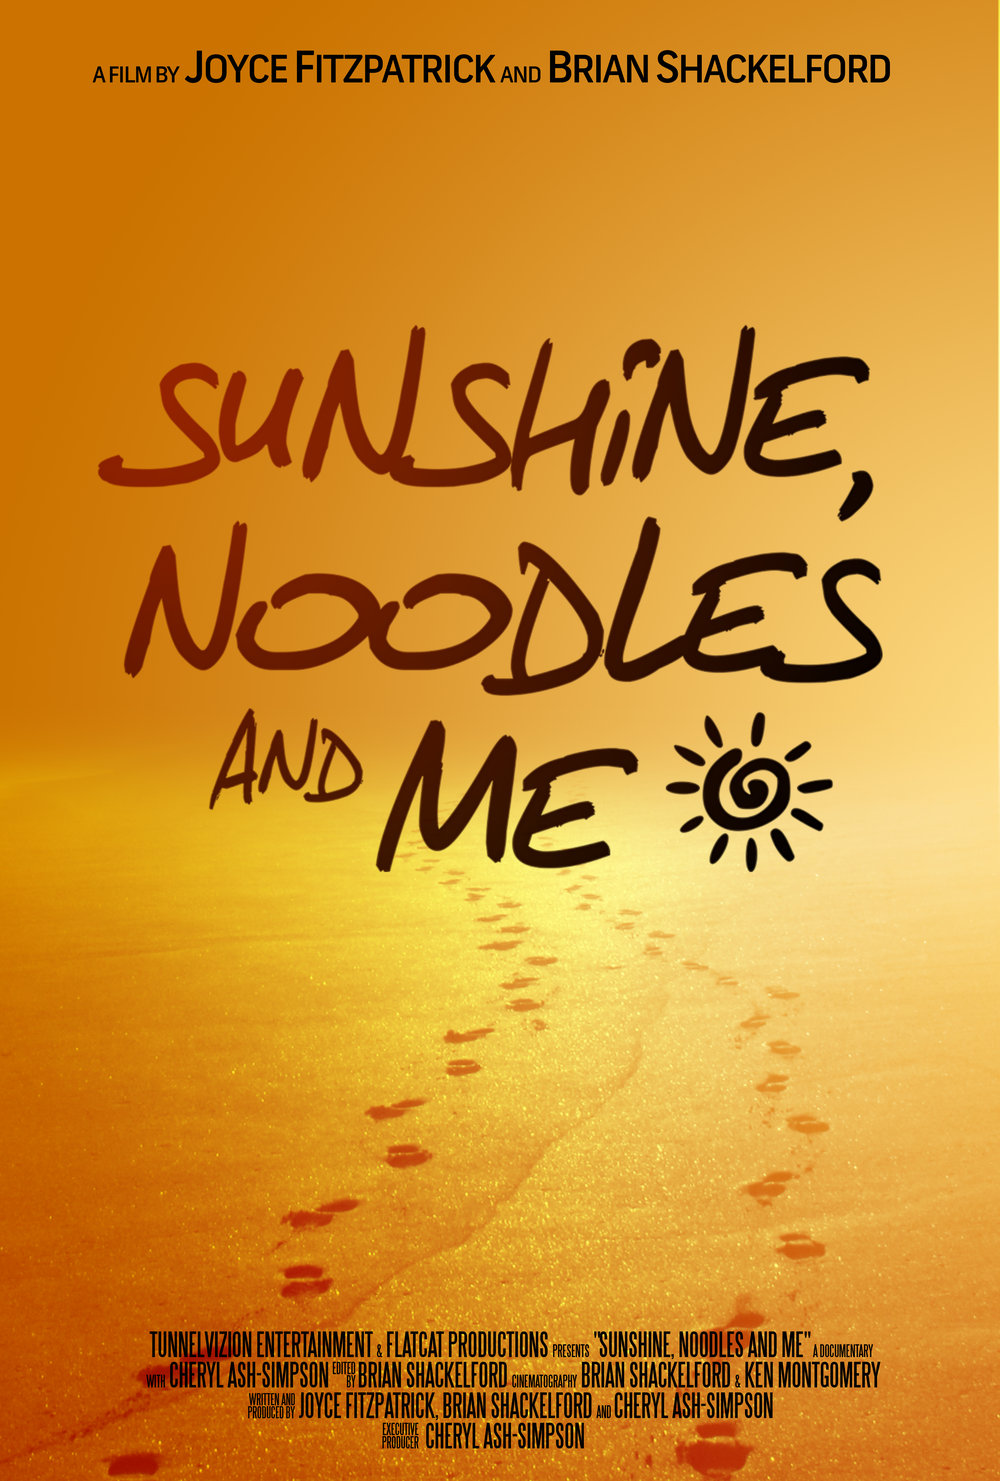 "DOCUMENTARY (2014)  ""Sunshine, Noodles and Me"" is a documentary about the journey of a woman who discovers she has breast cancer just three days before her wedding. Blessed, bald, and beautiful, Cheryl Ash-Simpson shares her heartwarming story, giving an honest portrayal of her battle with breast cancer and her determination to beat the disease. With the love and support of her fiancé, Cheryl shows you that you can get through adversity, especially if you're armed with love.  Awards: First Place Winner at The Capital City Black Film Festival, Bronze Winner at the Kingdomwood Christian Film Festival, Official Selection at Greater Cleveland Urban Black Film Festival, Official Selection at the Greater Cleveland Urban Black Film Festival, and Official Selection at the Pan African Film Festival.   http://www.sunshinenoodlesandme.com/    I MDB:  Sunshine, Noodles and Me    F acebook:  S  unshine Noodles and Me   Twitter:  @sunnoodlesandme   Instagram:  @sunshinenoodlesandme"